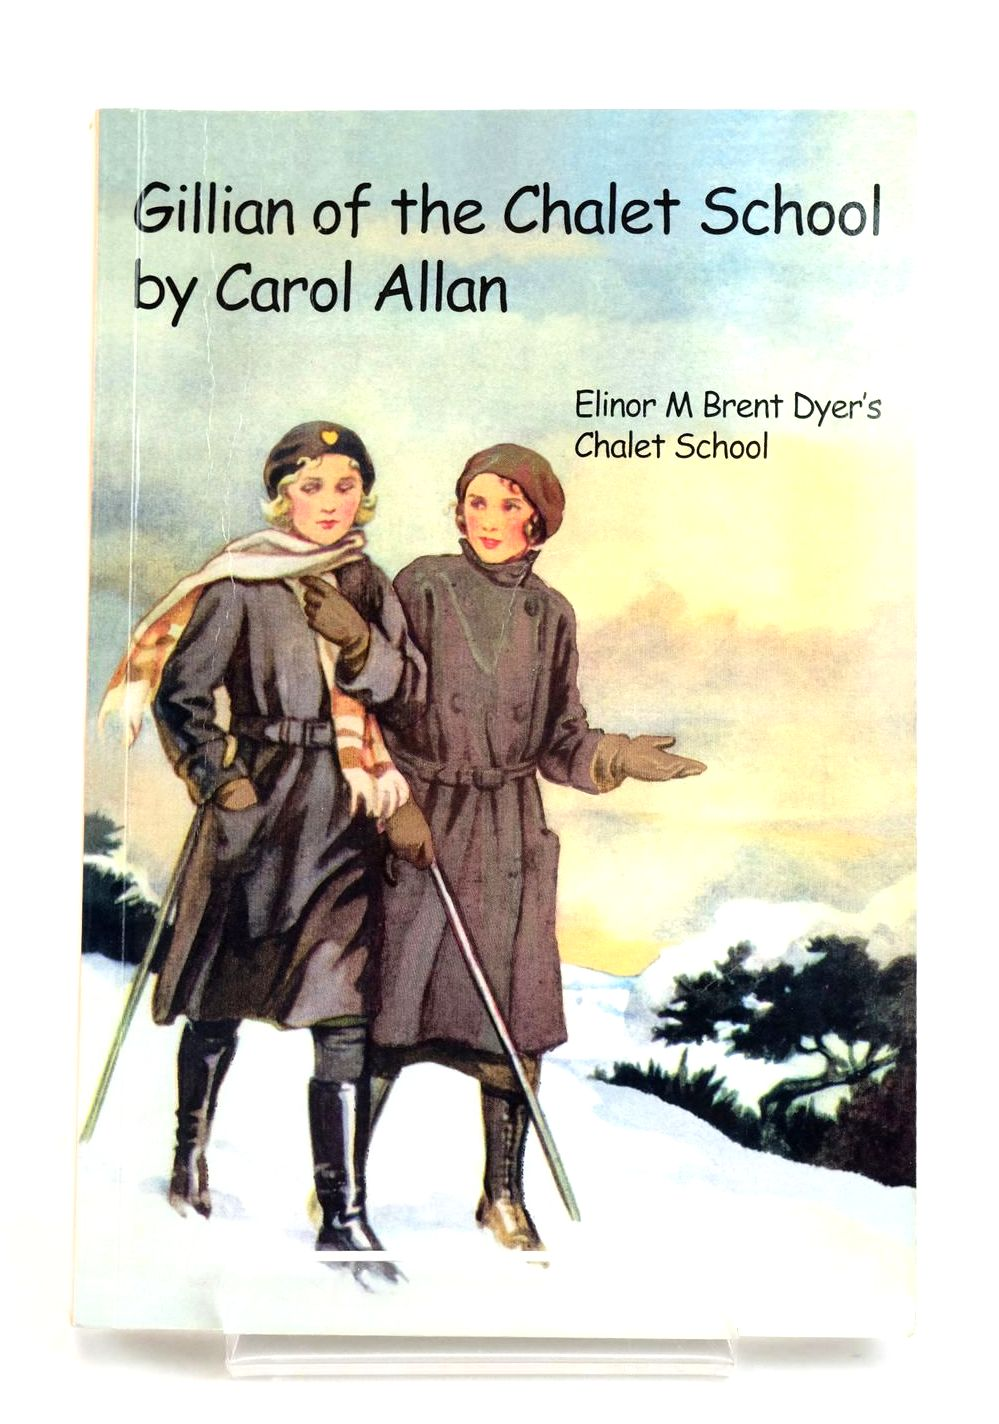 Photo of GILLIAN OF THE CHALET SCHOOL written by Allan, Carol published by Girls Gone By (STOCK CODE: 1319152)  for sale by Stella & Rose's Books